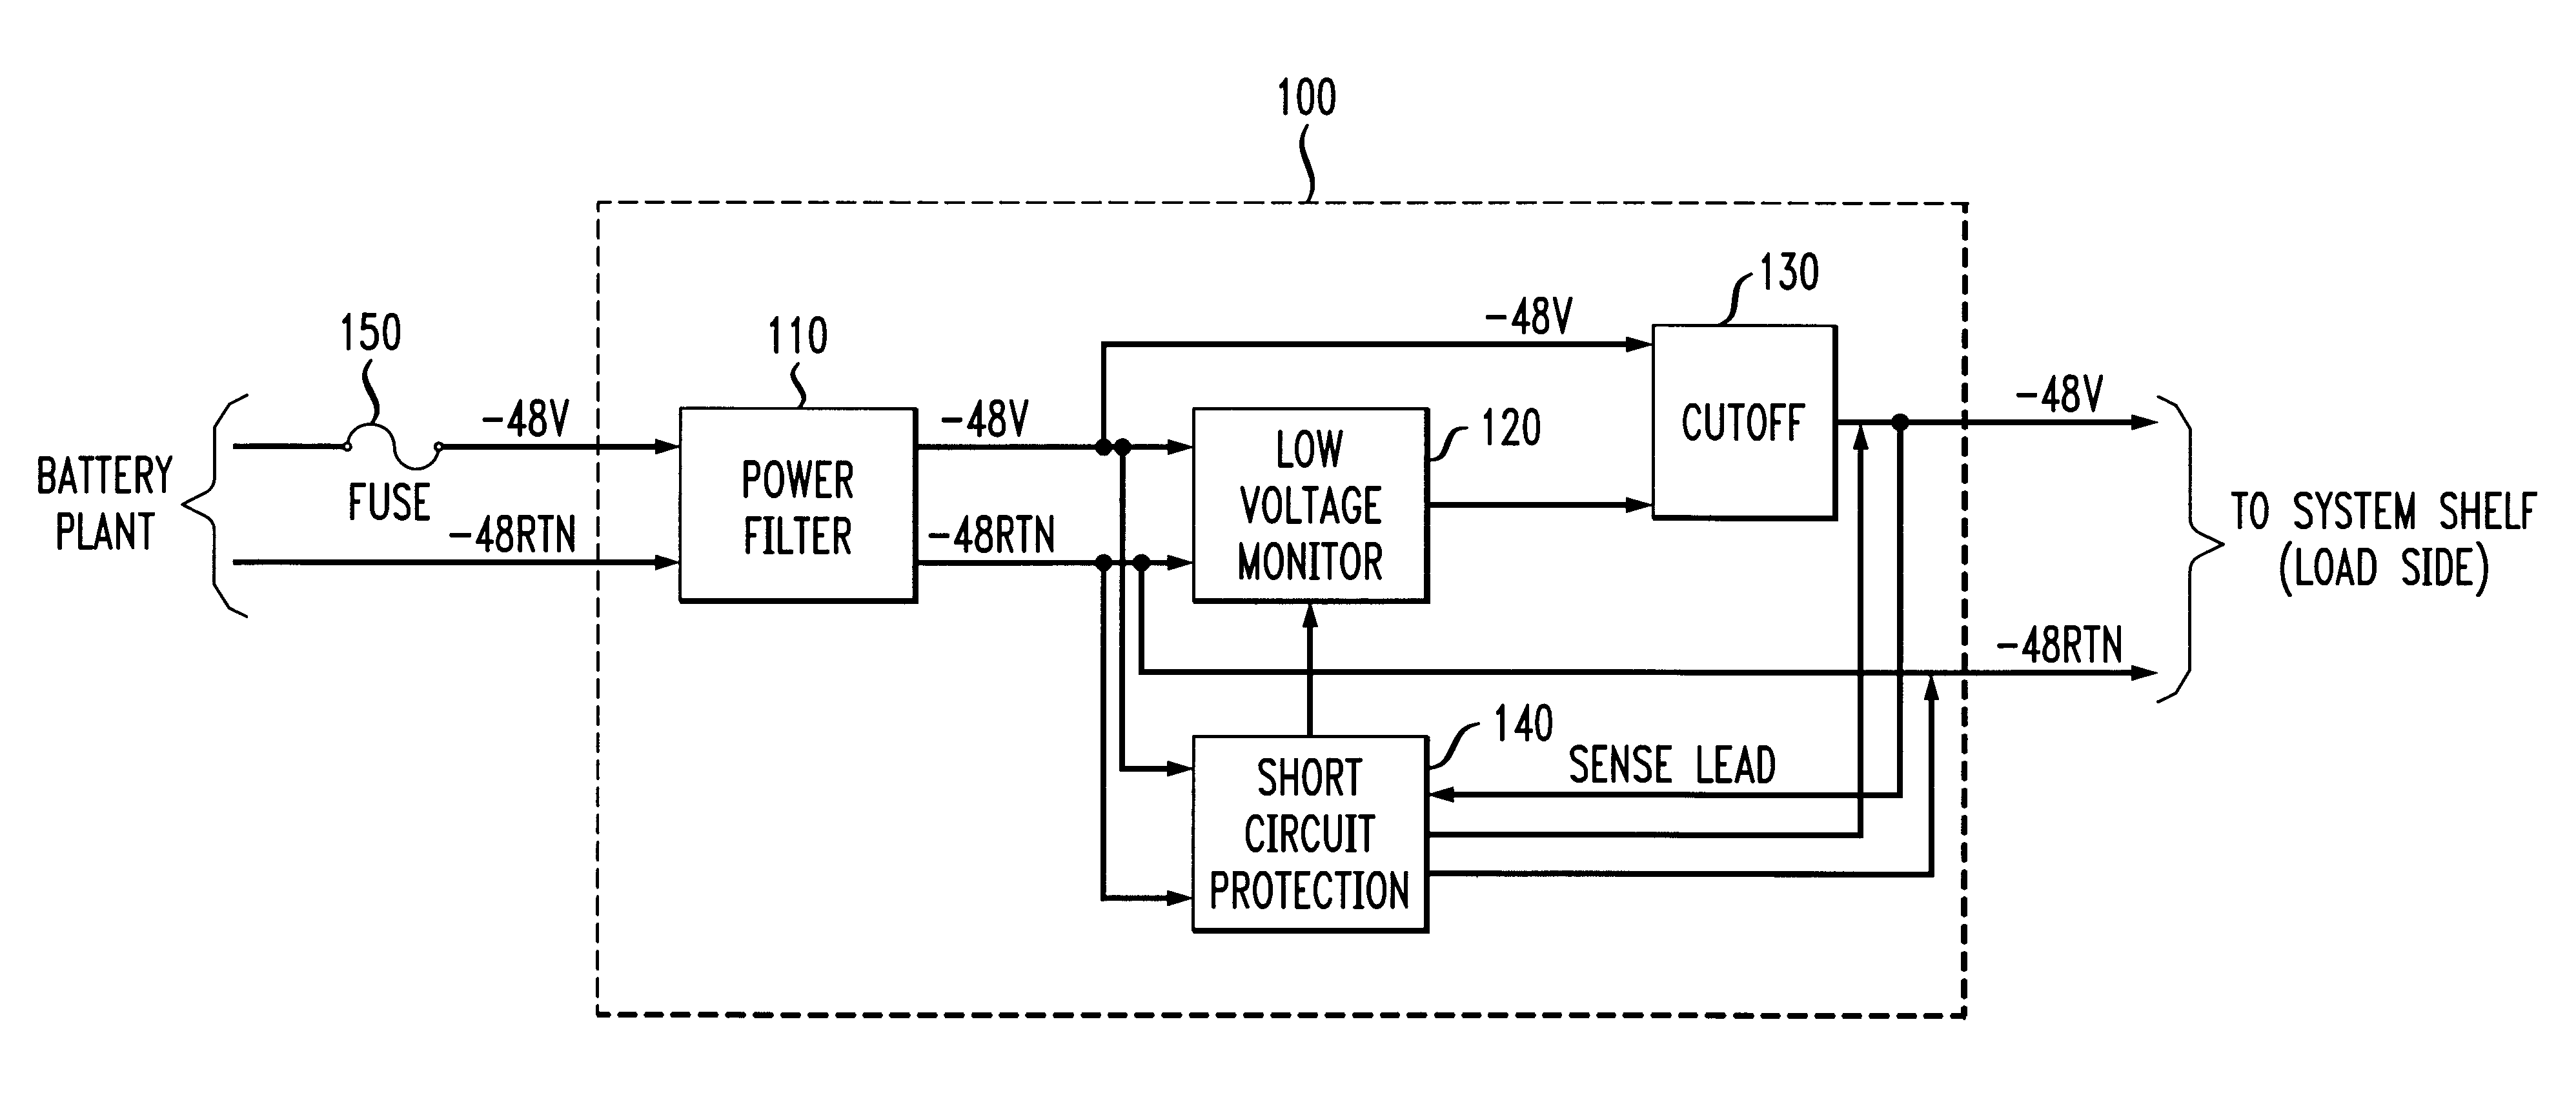 Patent US6339526 - Low voltage cutoff circuit with short